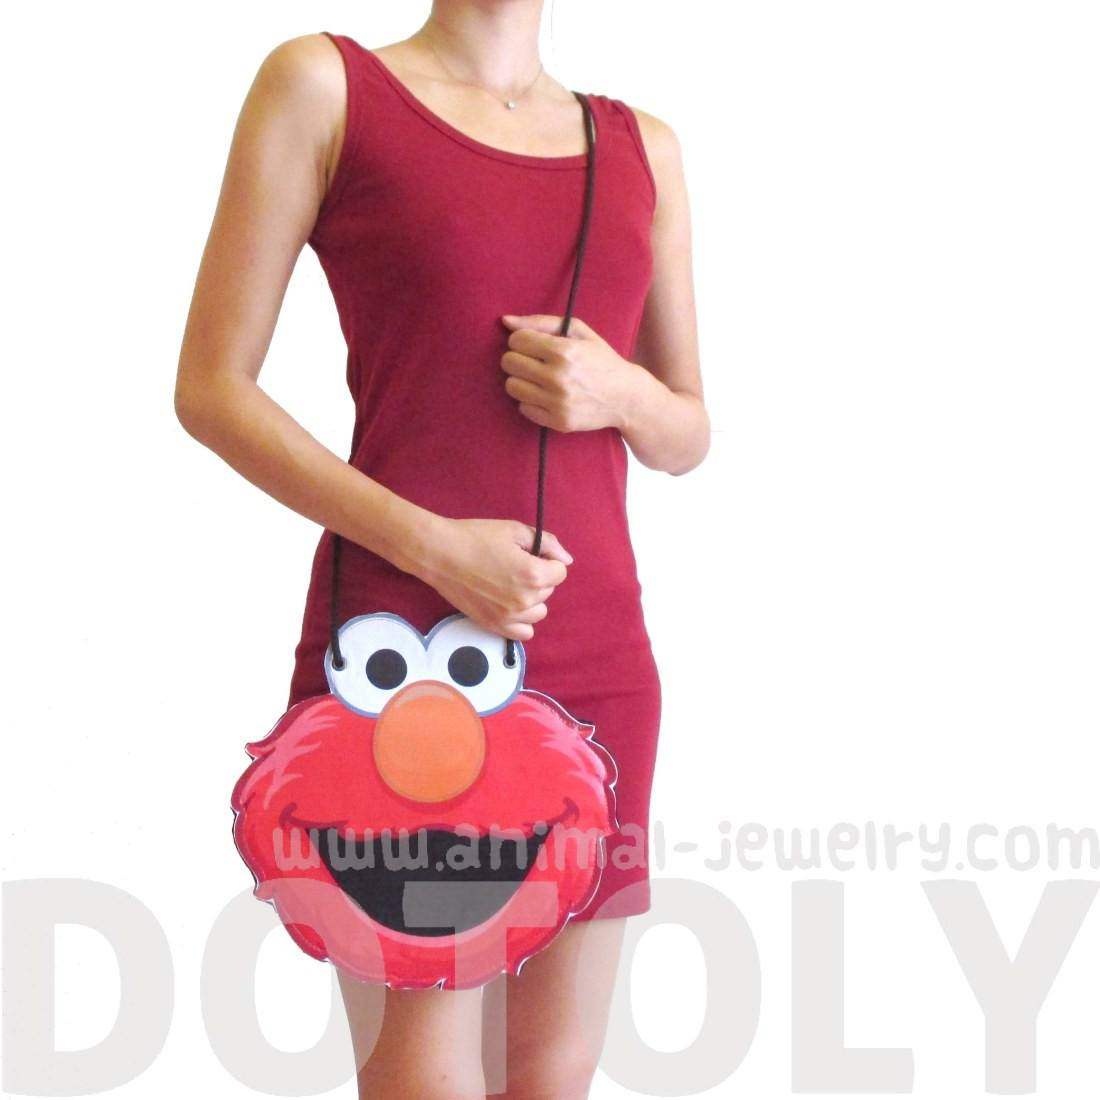 Sesame Street Elmo Muppet Shaped Vinyl Cross Body Bag